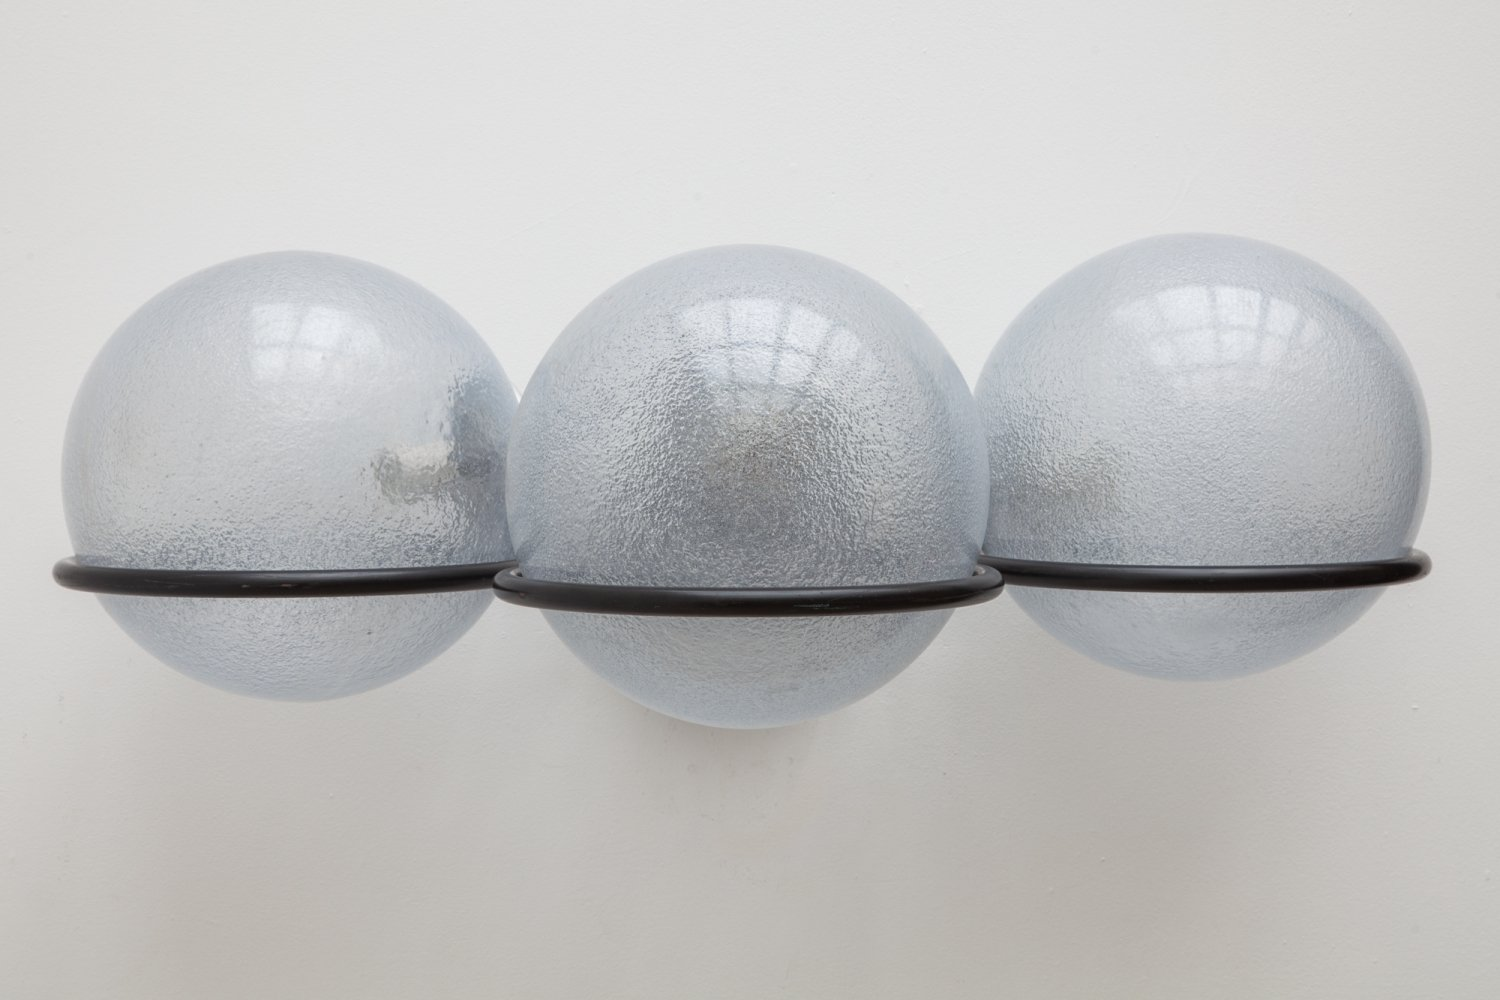 Outdoor Wall Light with Three Globes, 1960s